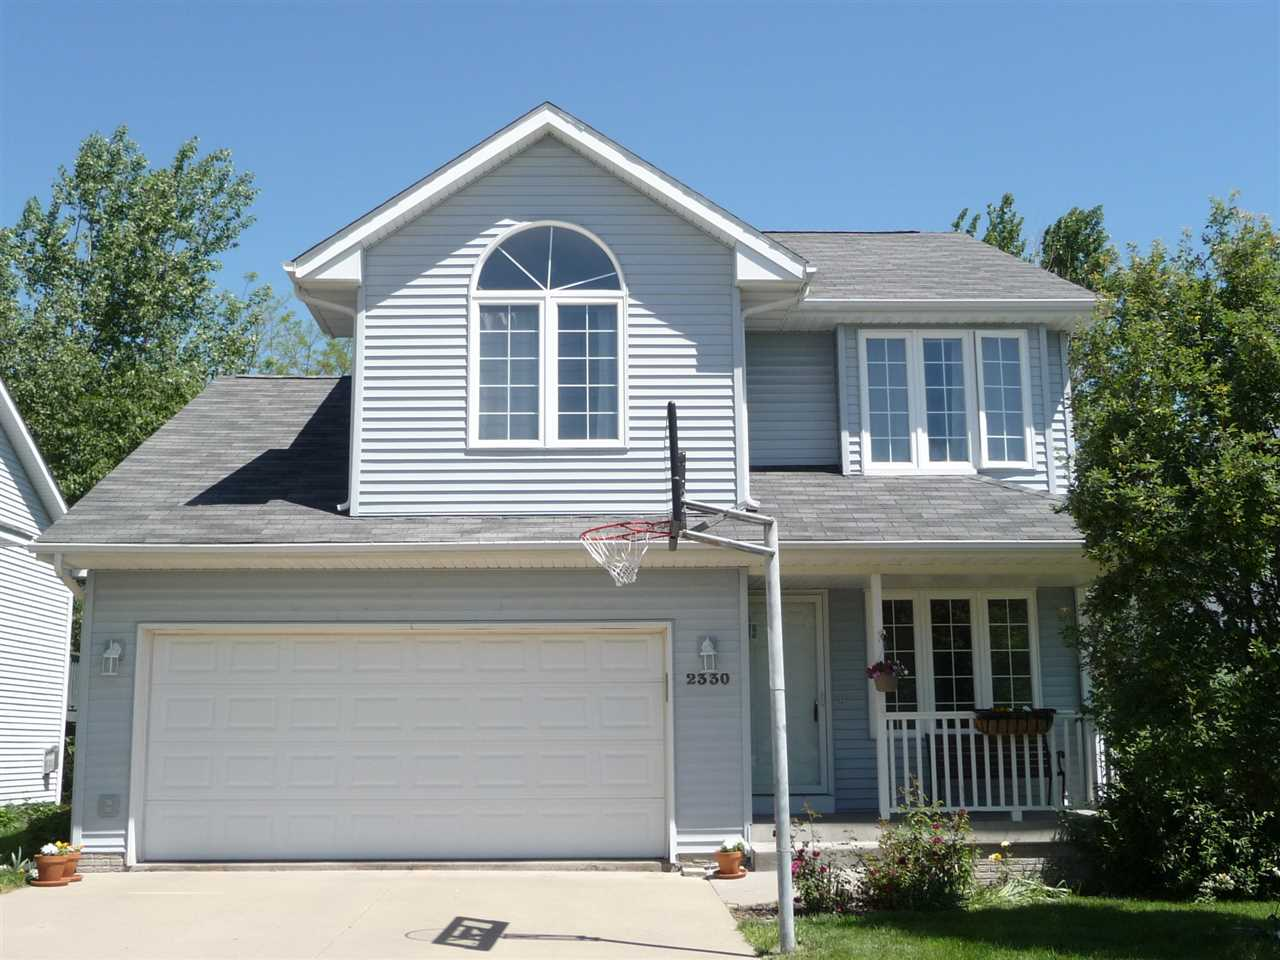 2330 Mulberry St, Coralville, IA 52241